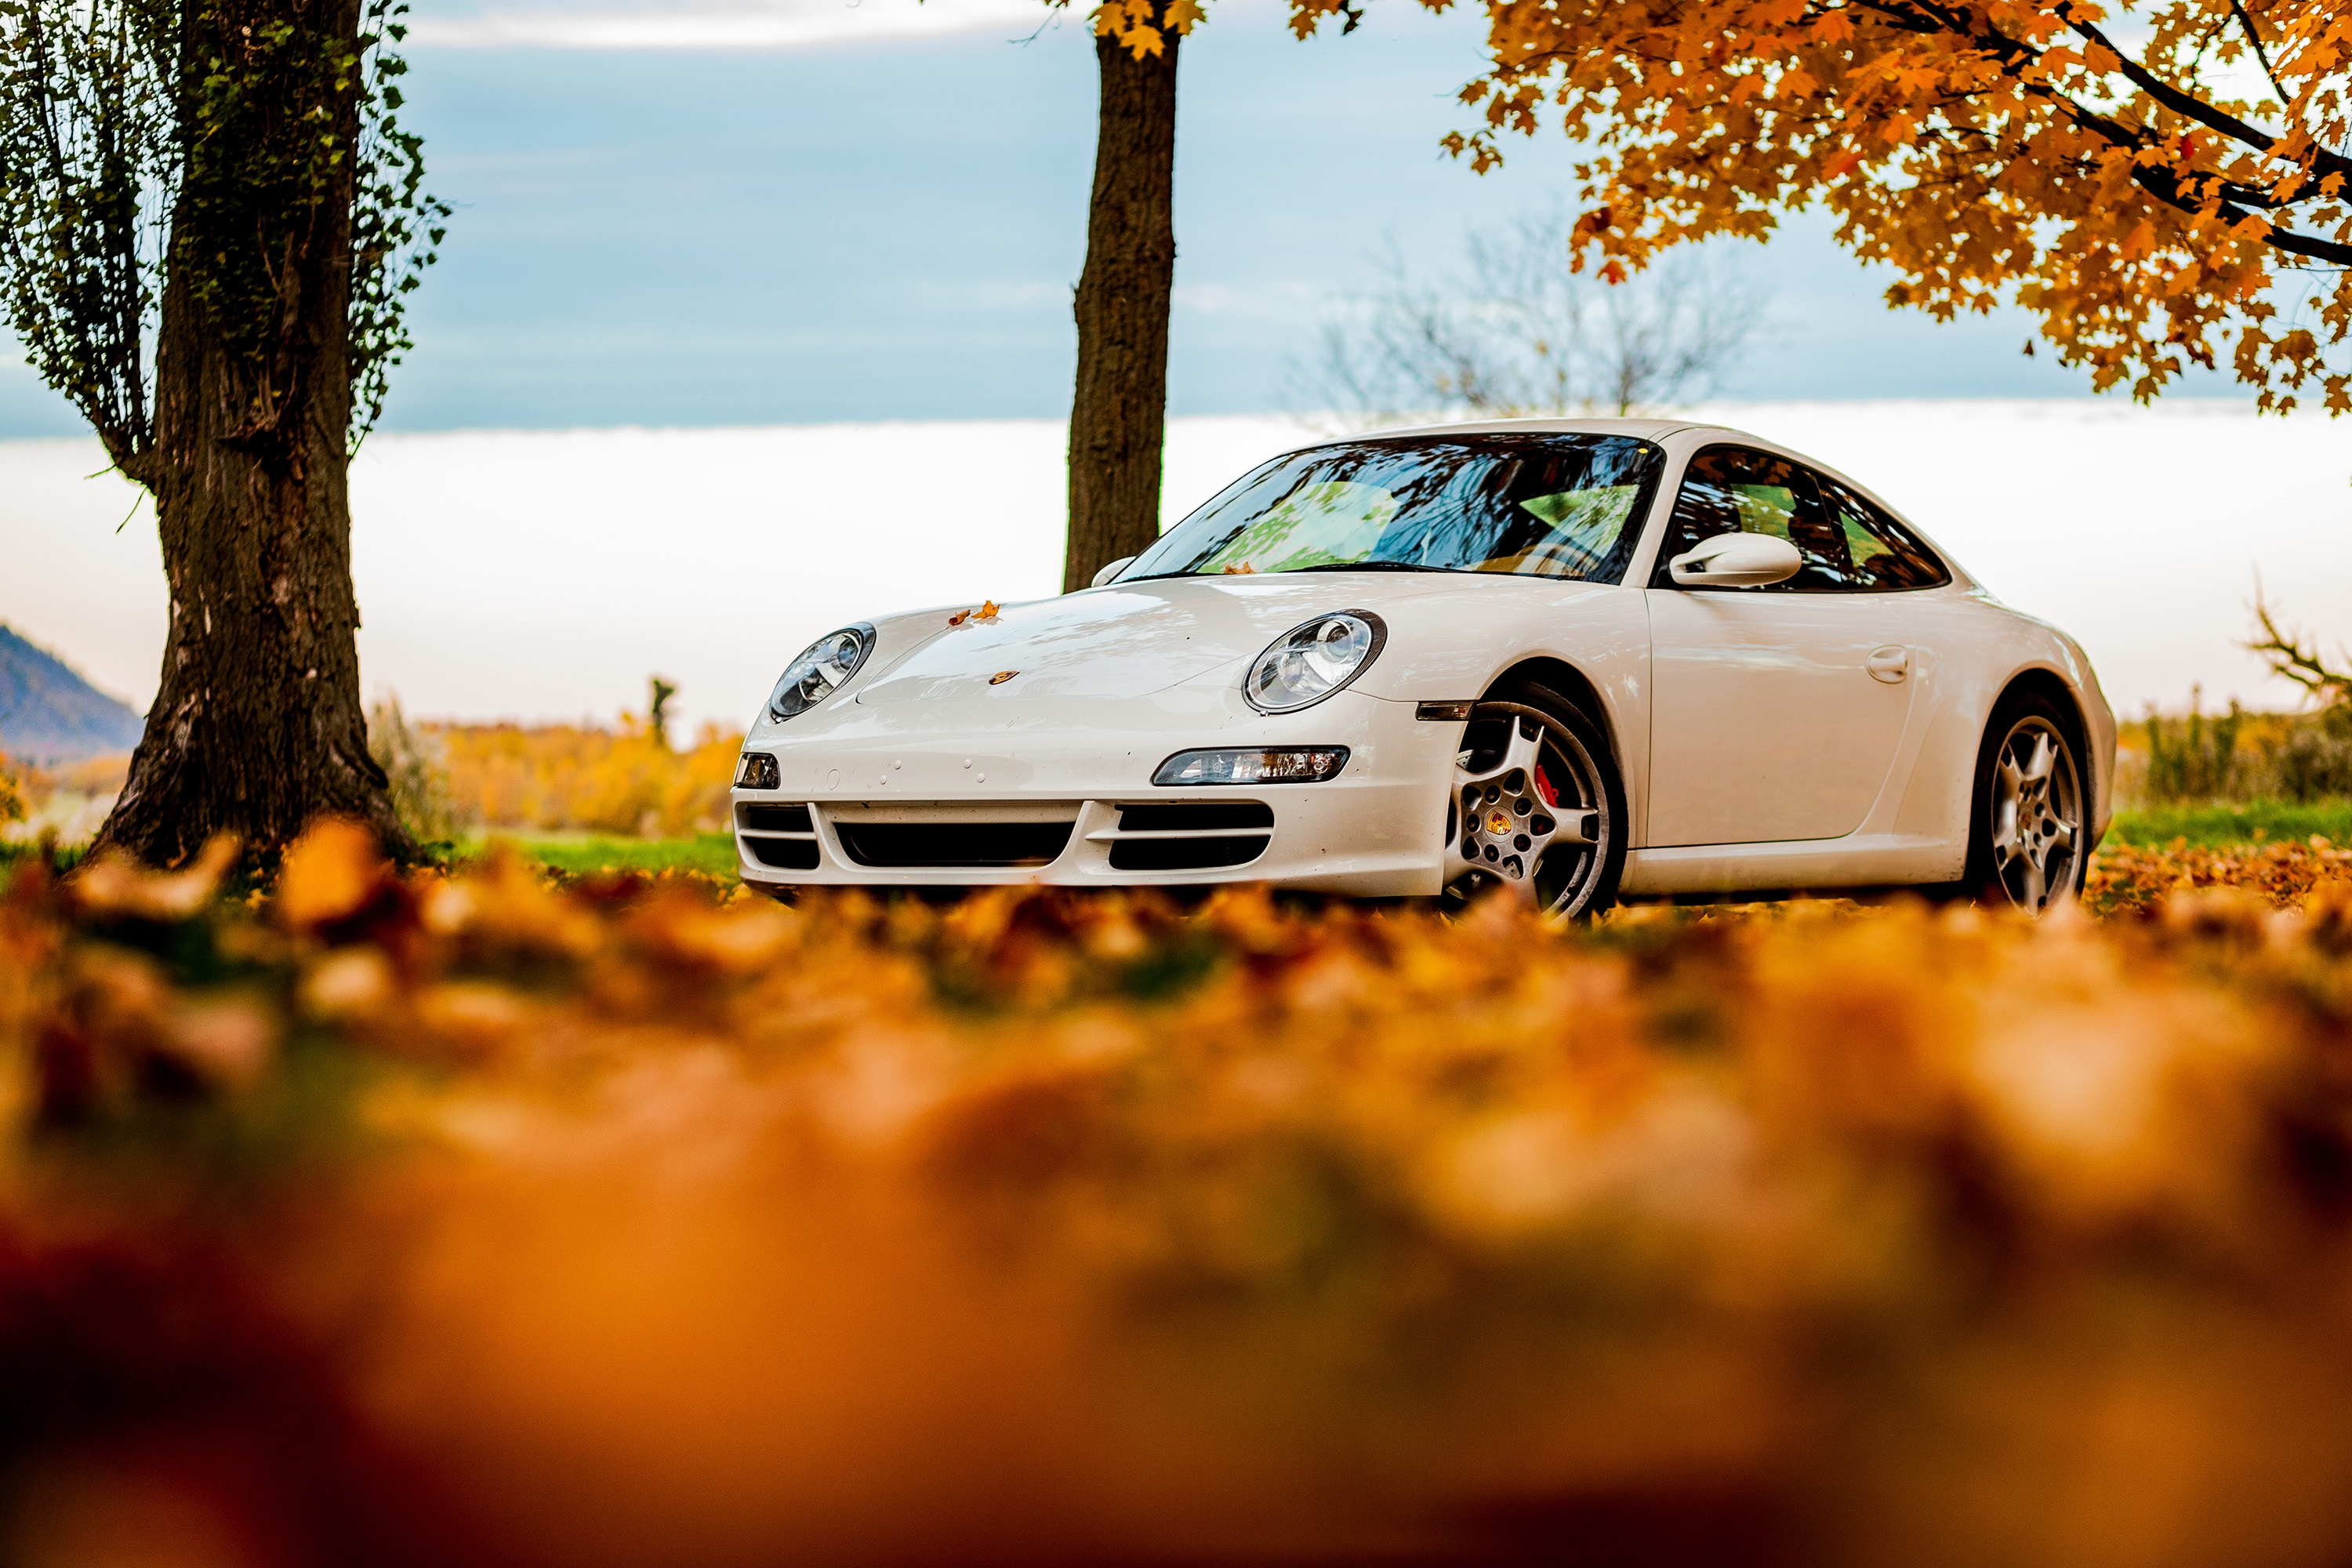 83959 download wallpaper Porsche, Trees, Sky, Autumn, Leaves, Cars, 911 screensavers and pictures for free